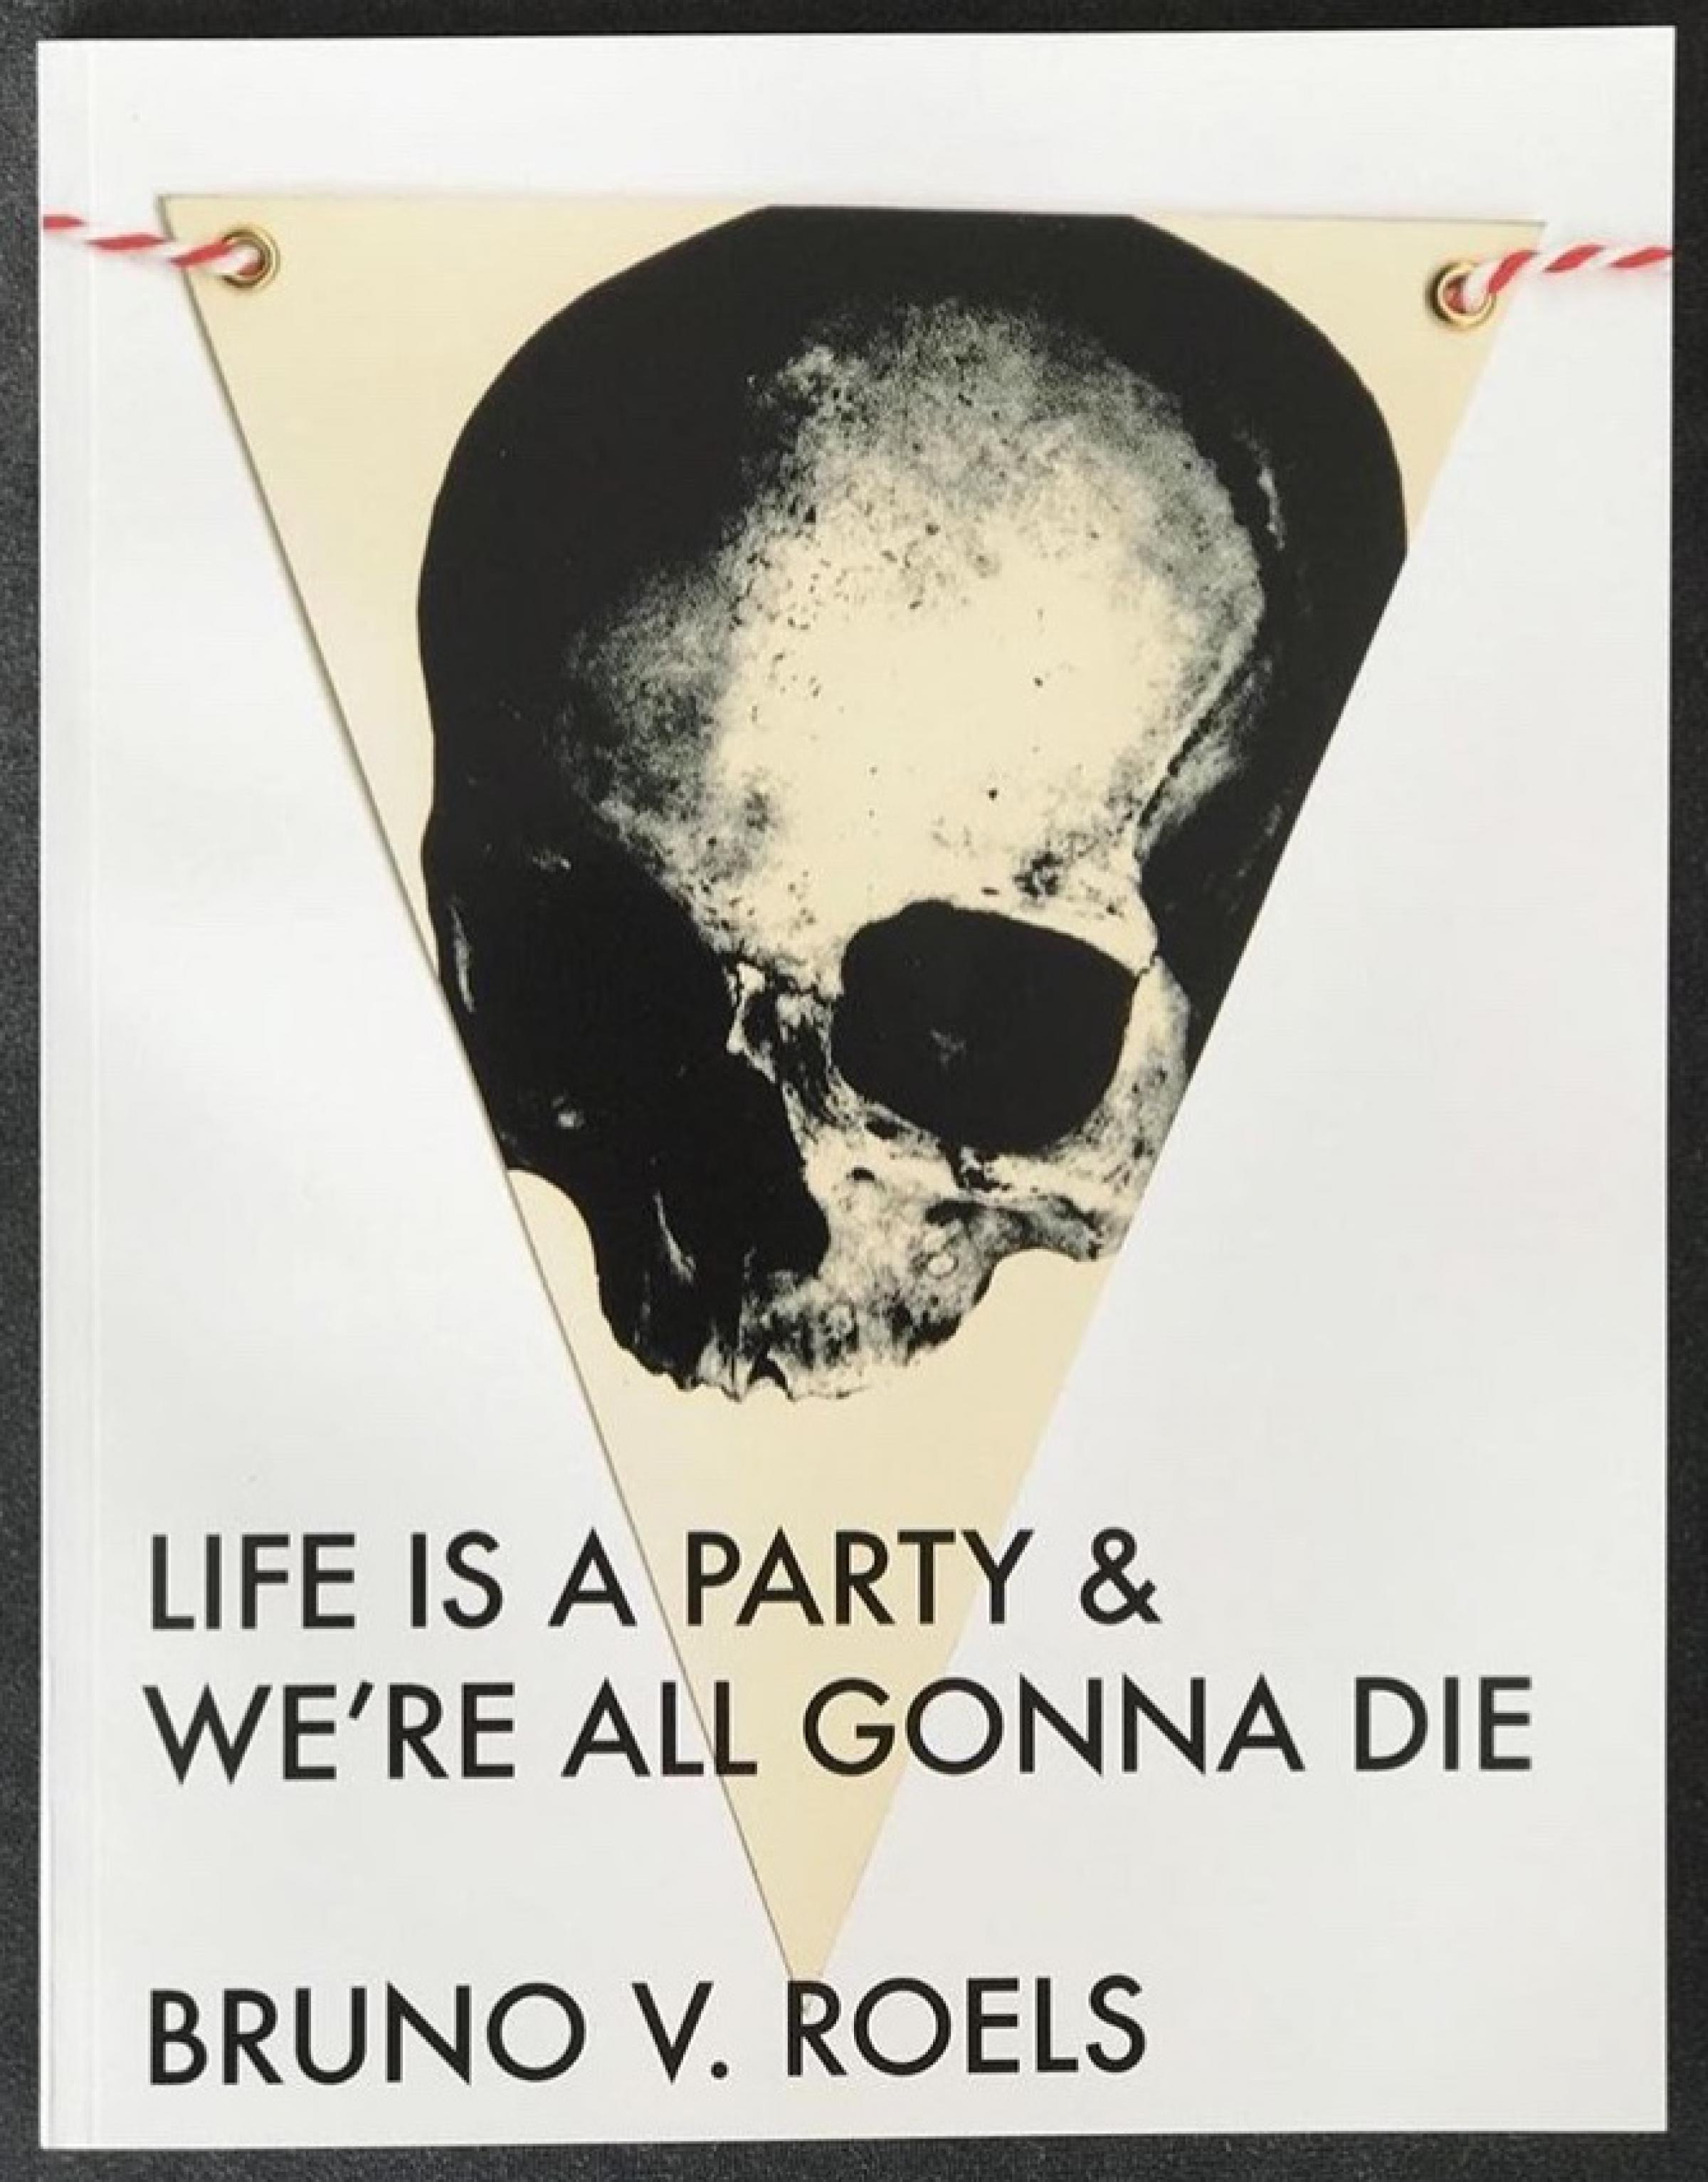 Bruno V. Roels: Life Is A Party & We're All Gonna Die